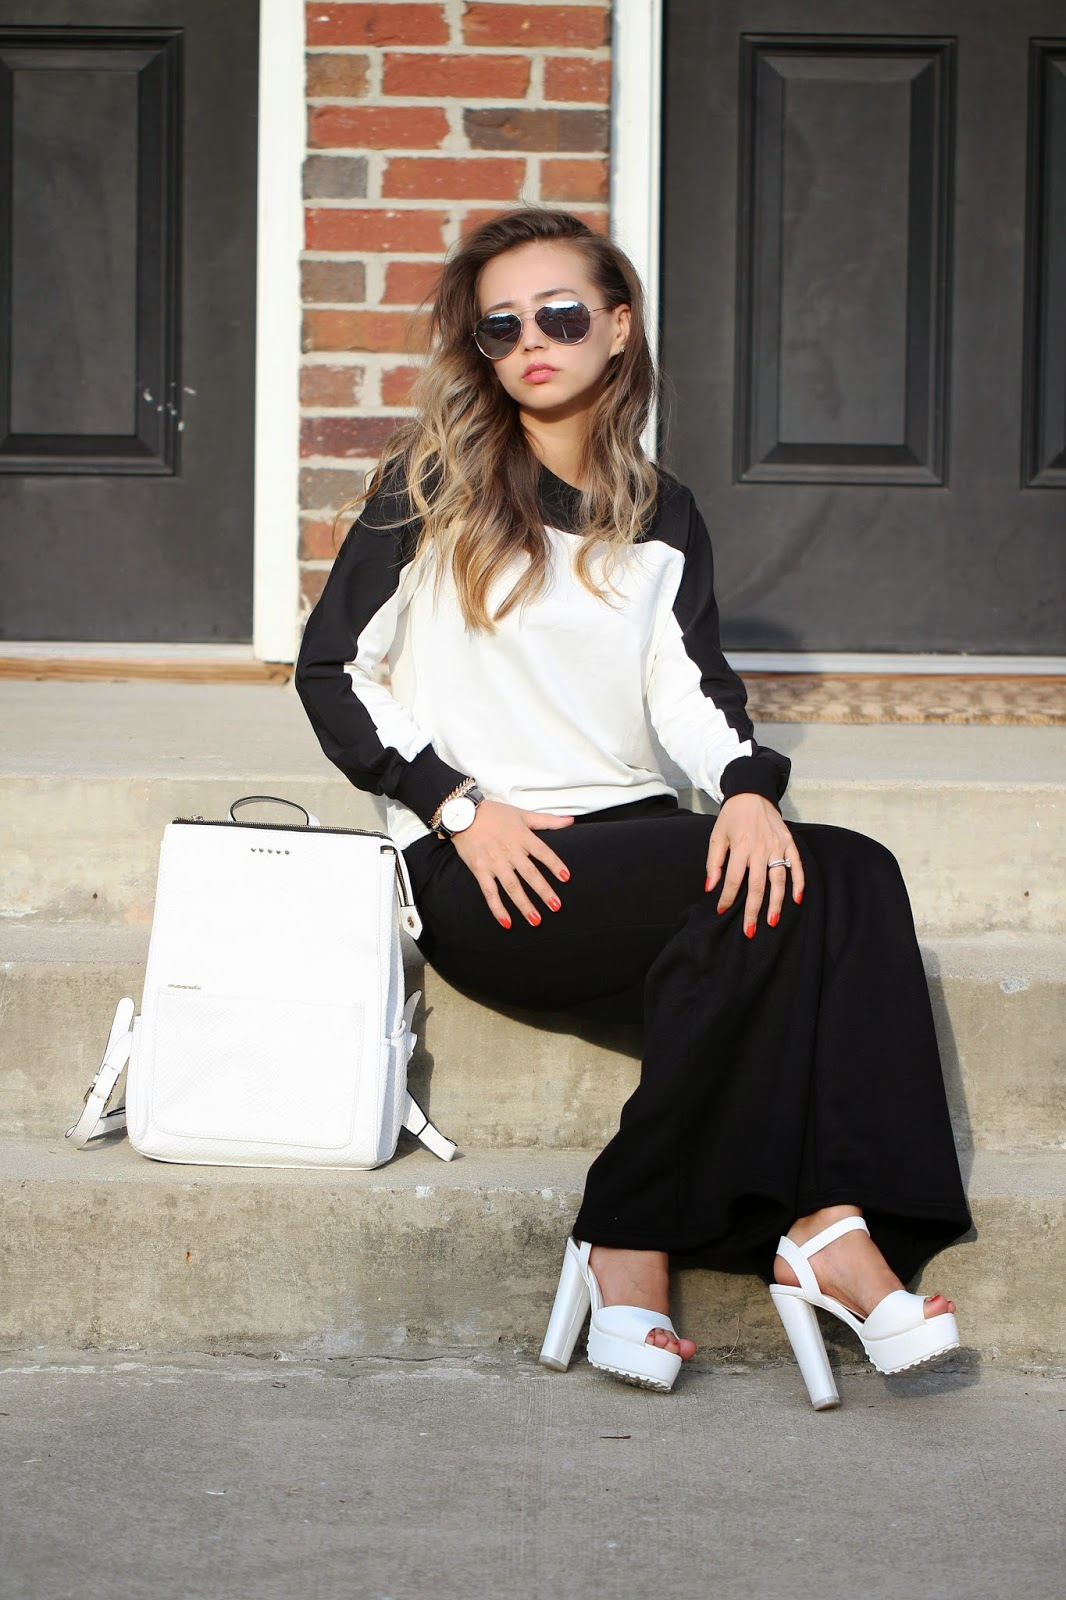 Make a Statement This Fall with Black and White Clothes